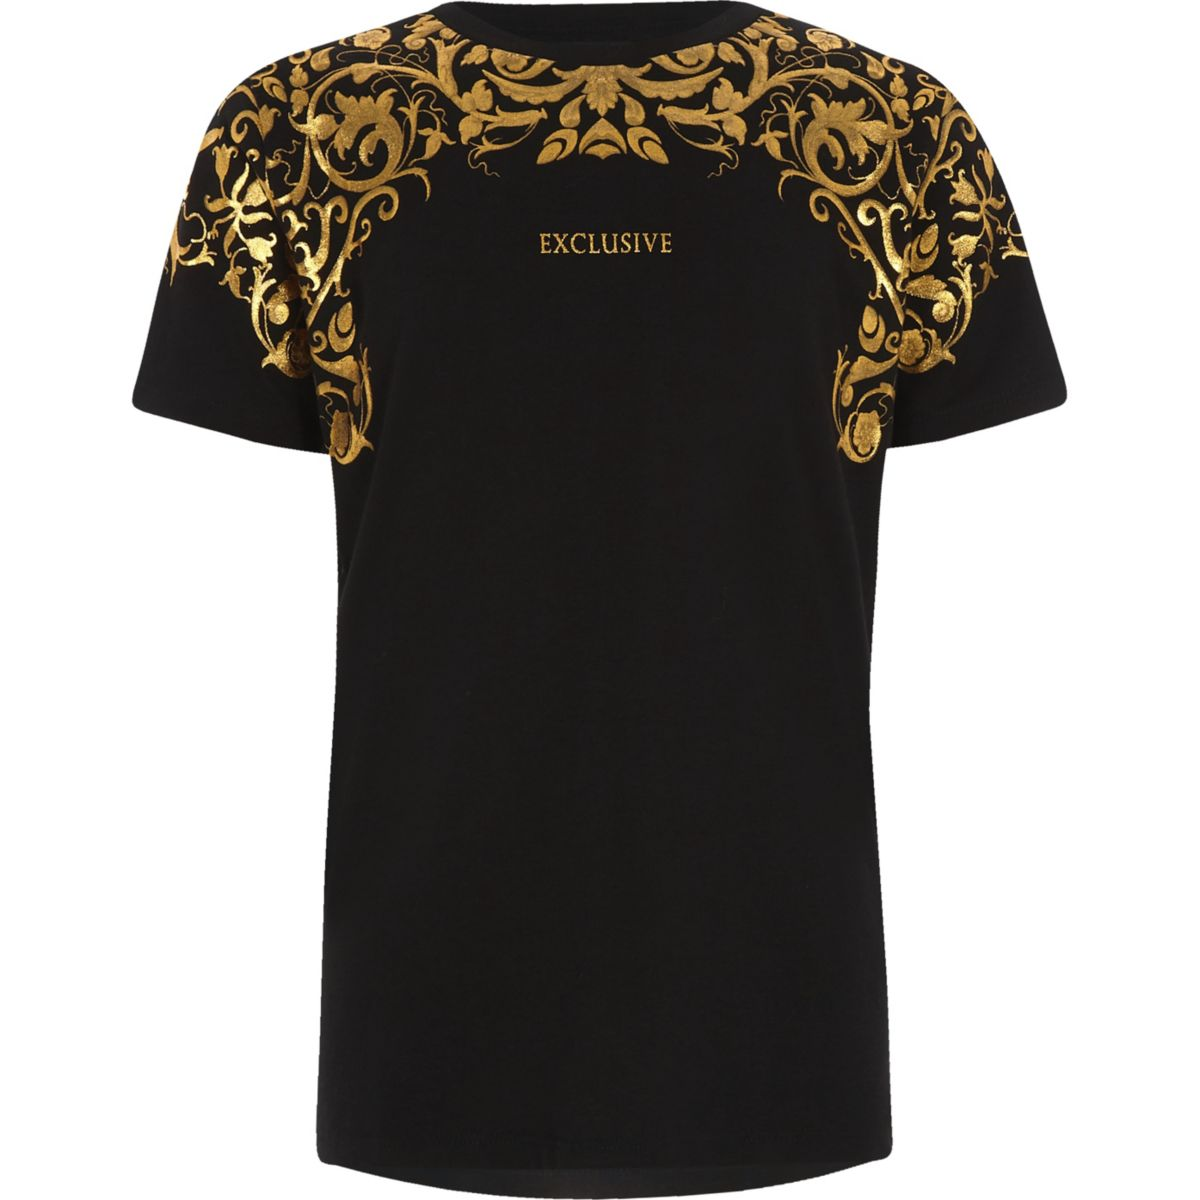 Boys 'exclusive' gold foil print T-shirt